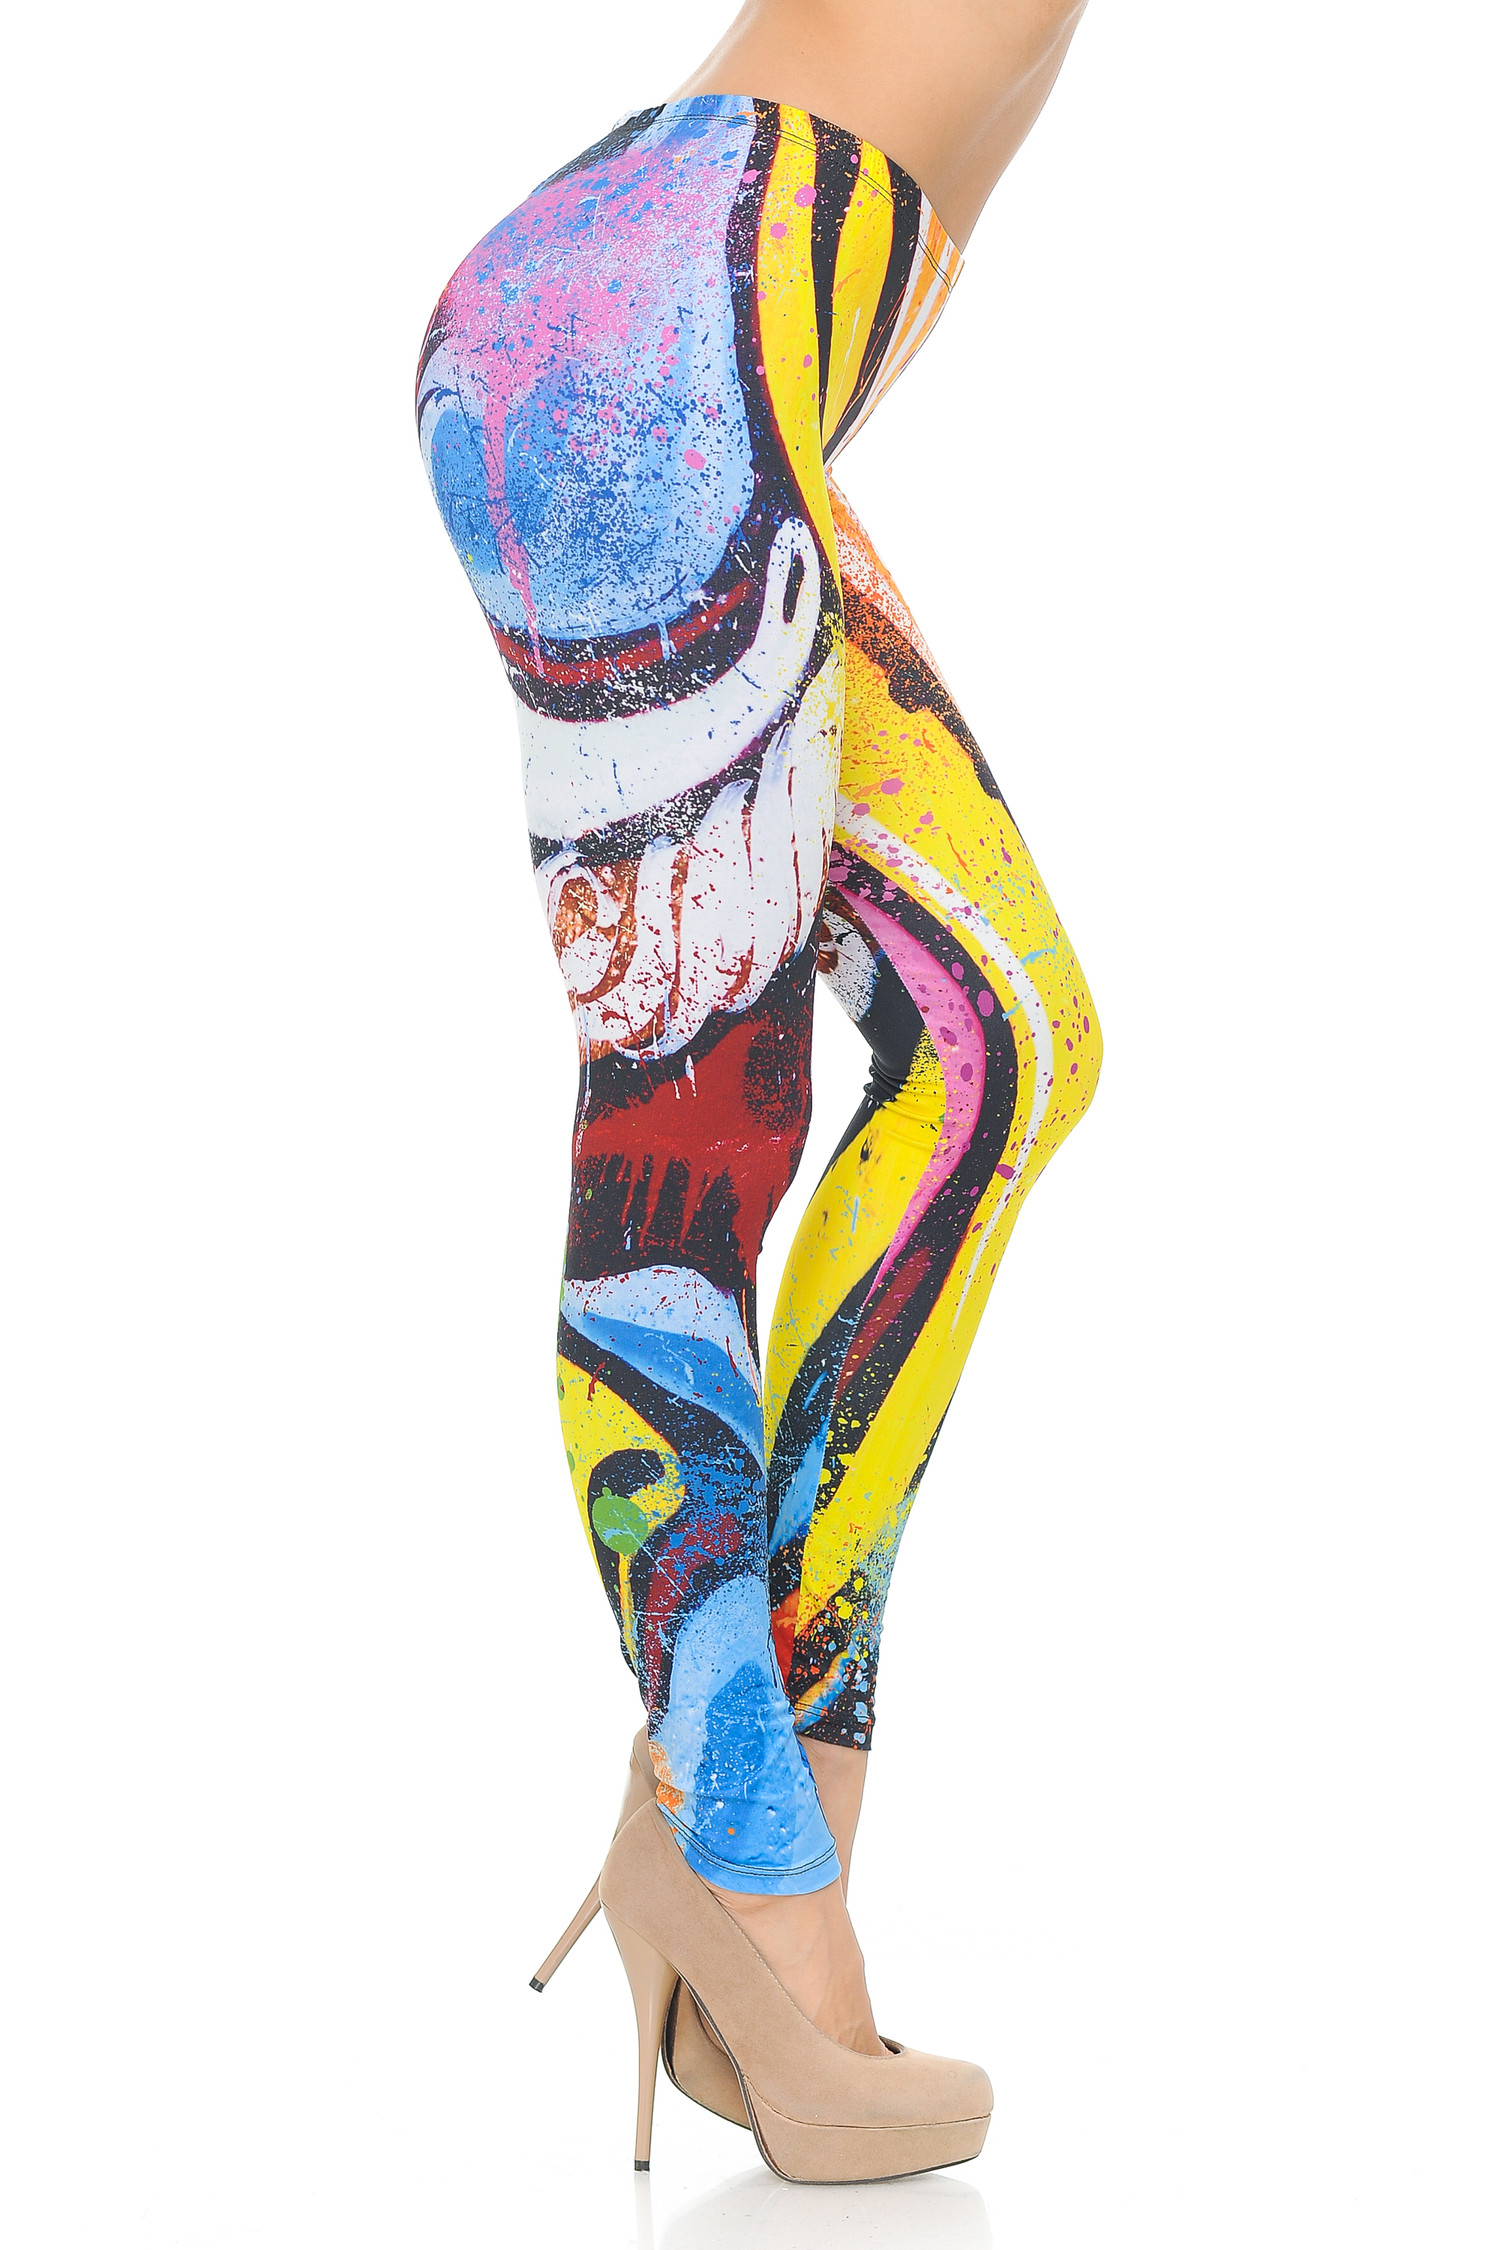 Double Brushed Graphic Picasso Paint Strokes Leggings